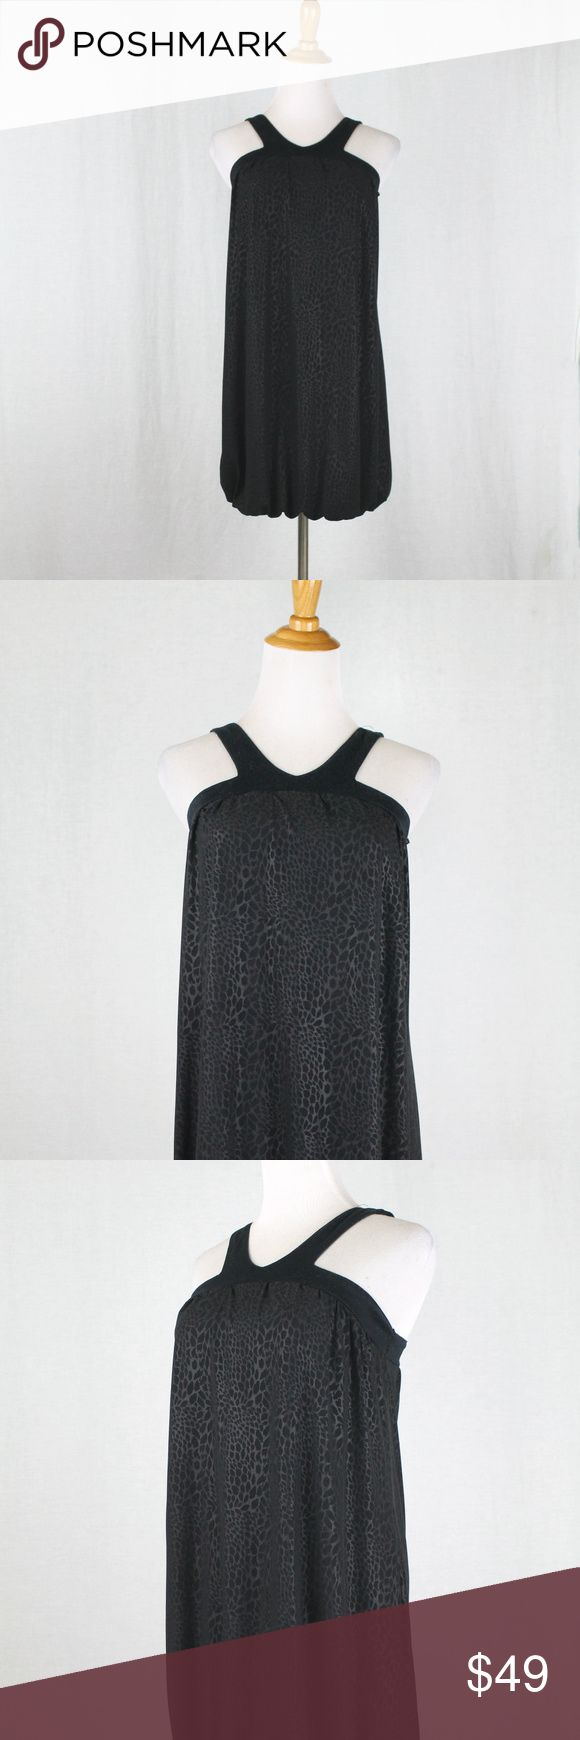 ZARA Evening Black Cheetah Print Mini Dress Black Cheetah print on Black Jersey Shift Dress Bubble hem, sleeveless, Halter Straps with a V neck Very short & flirty. Lining has a wet look, very shiny, silky jersey. The dress itself has a matte effect, with tone on tone cheetah spots. Cotton straps Fully lined. This dress is from 2007. Almost vintage, much better quality than what's in their store now  Looks & feels brand new  Perfect with Guess Leopard fur coat listed poly/lycra blend Made in…